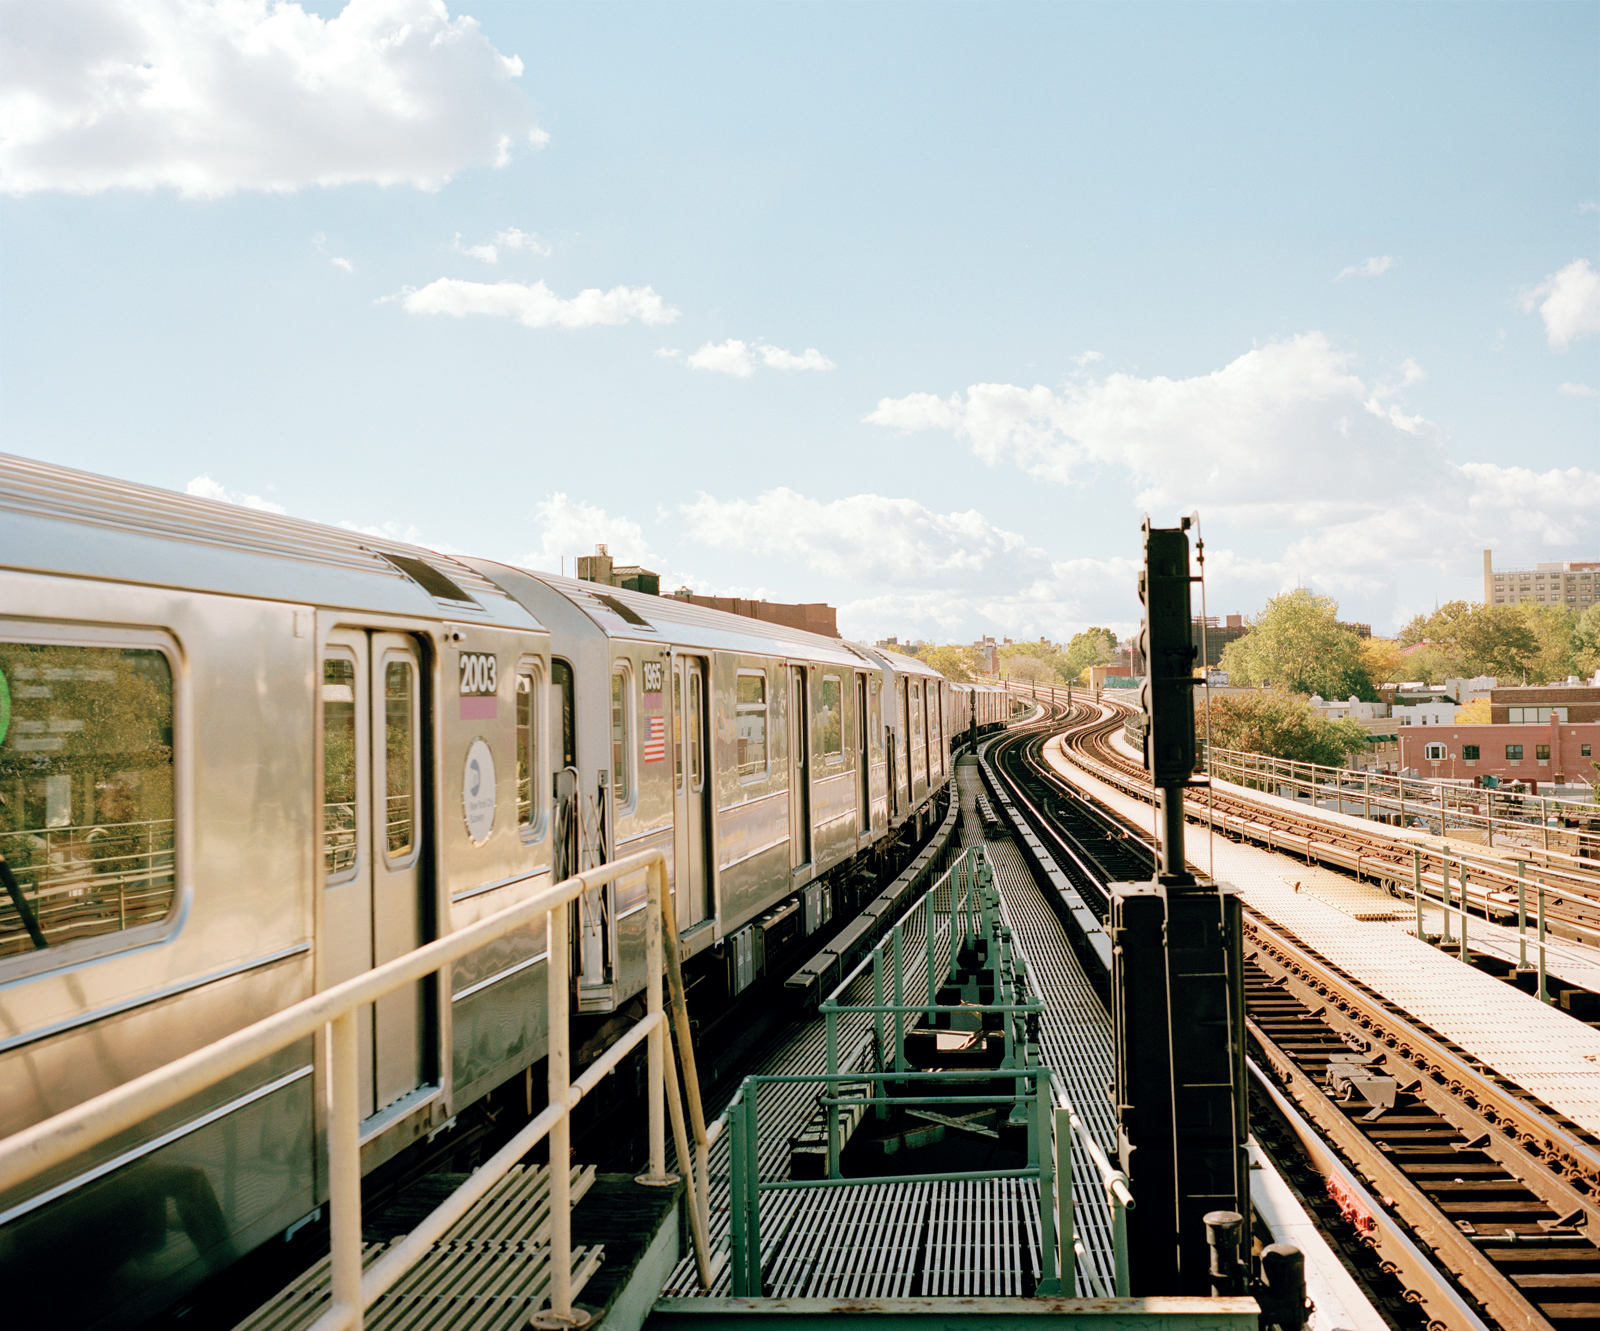 Exterior view of New York City subway